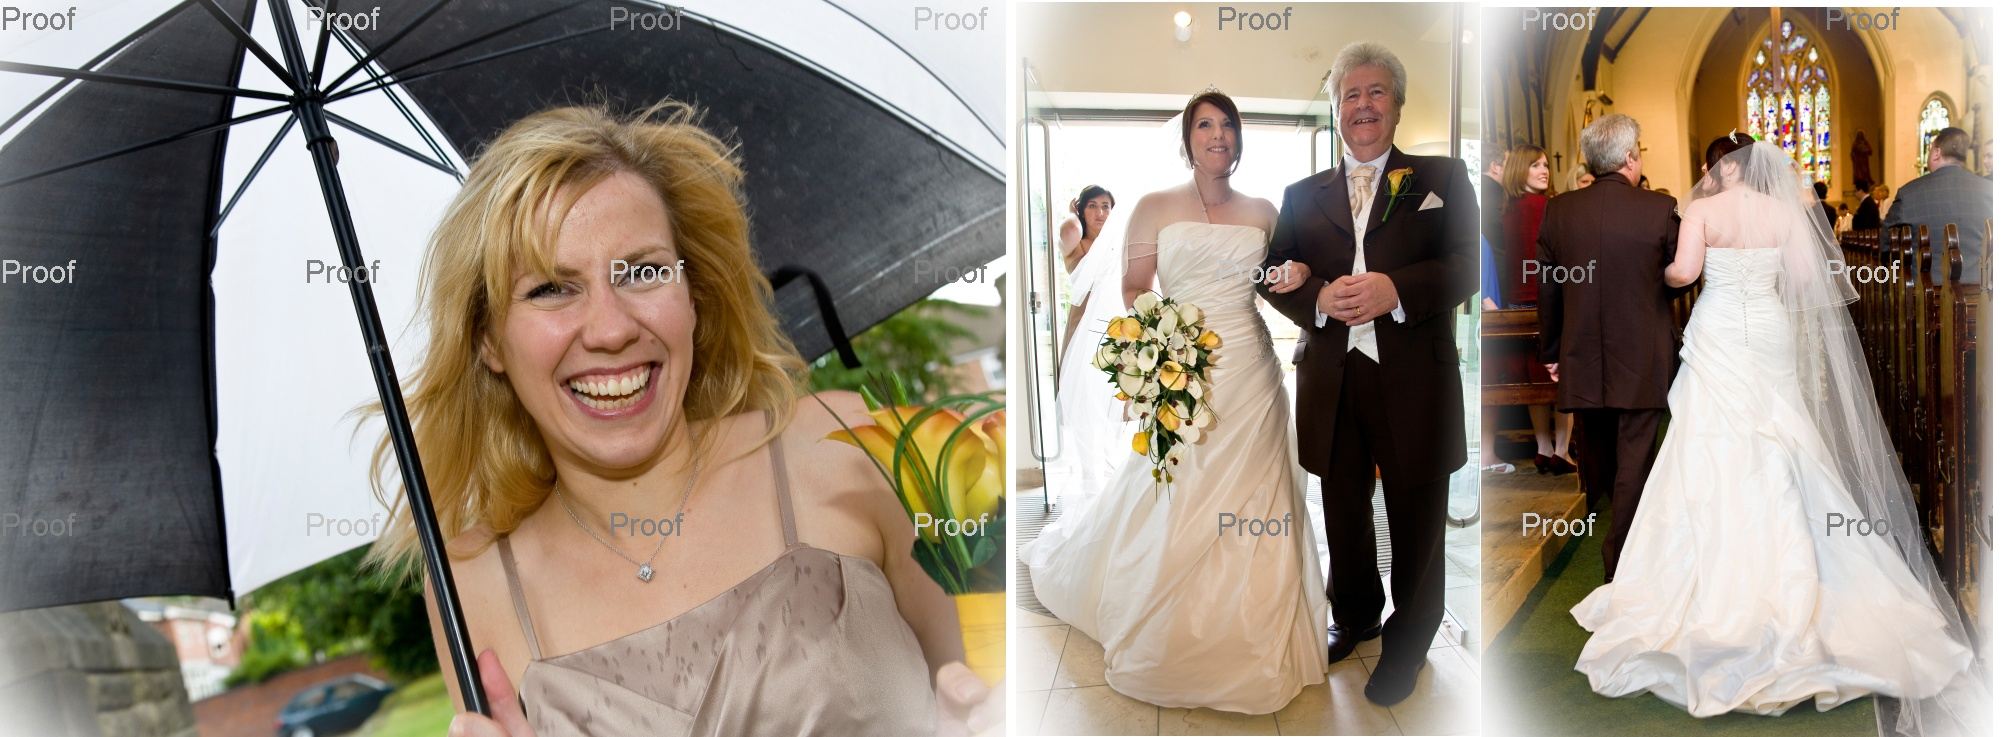 pages 16-17 of wedding storybook album with rainy day wedding pictures